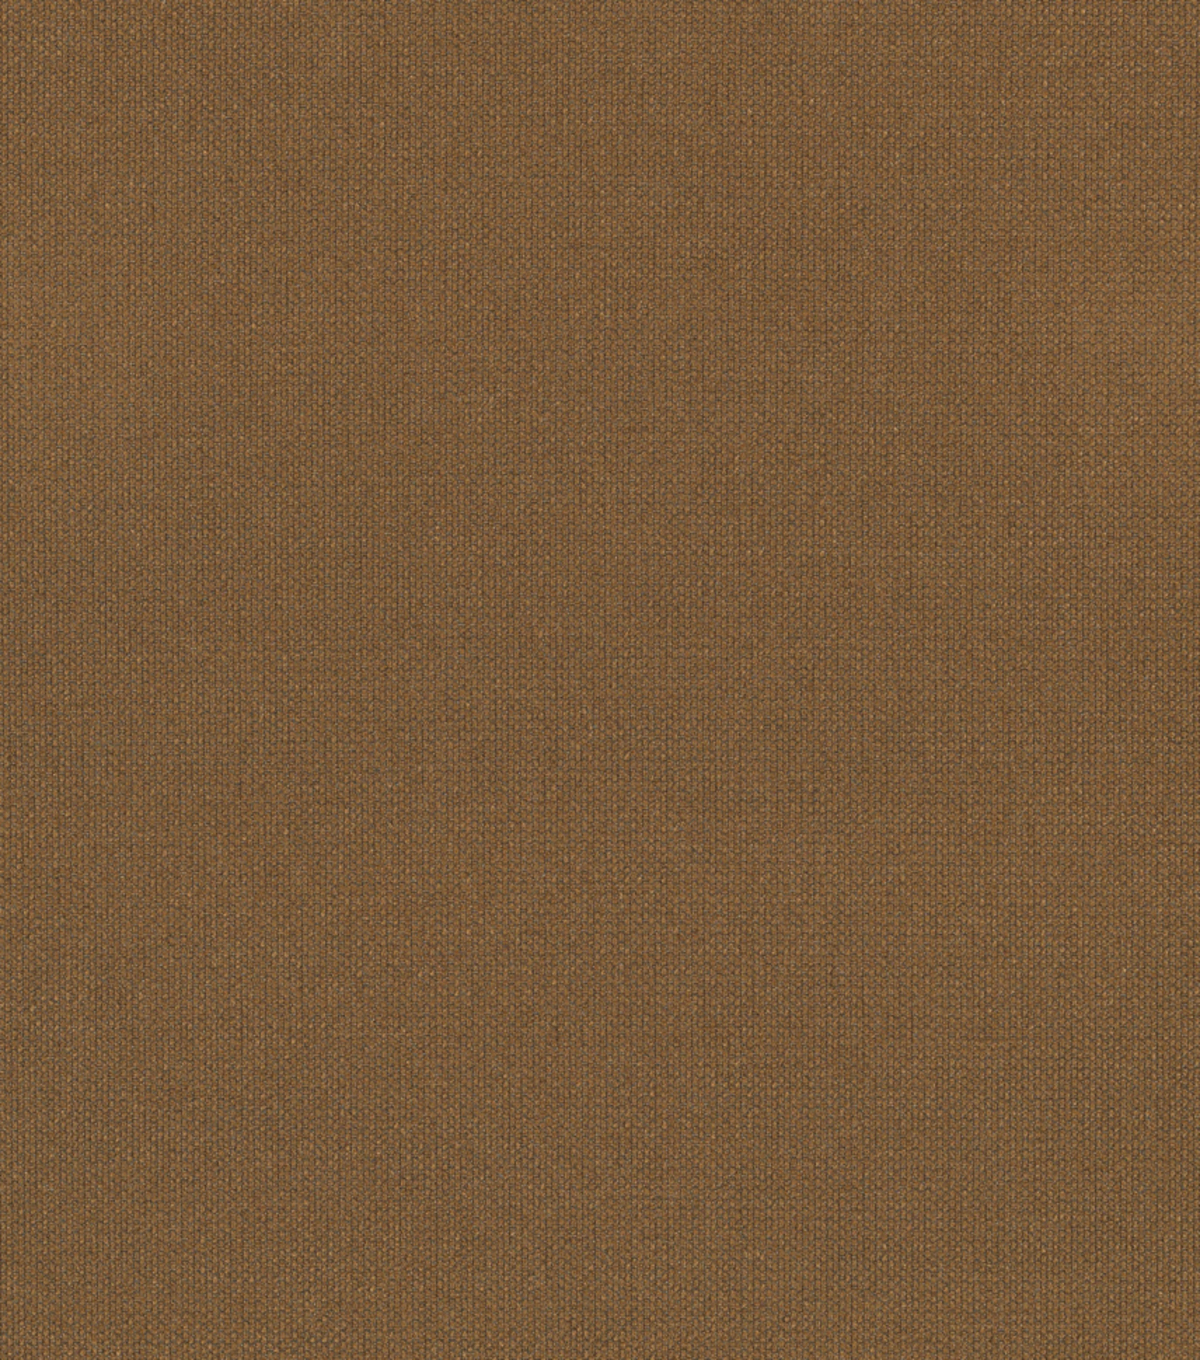 Home Decor 8\u0022x8\u0022 Fabric Swatch-Motown Molasses